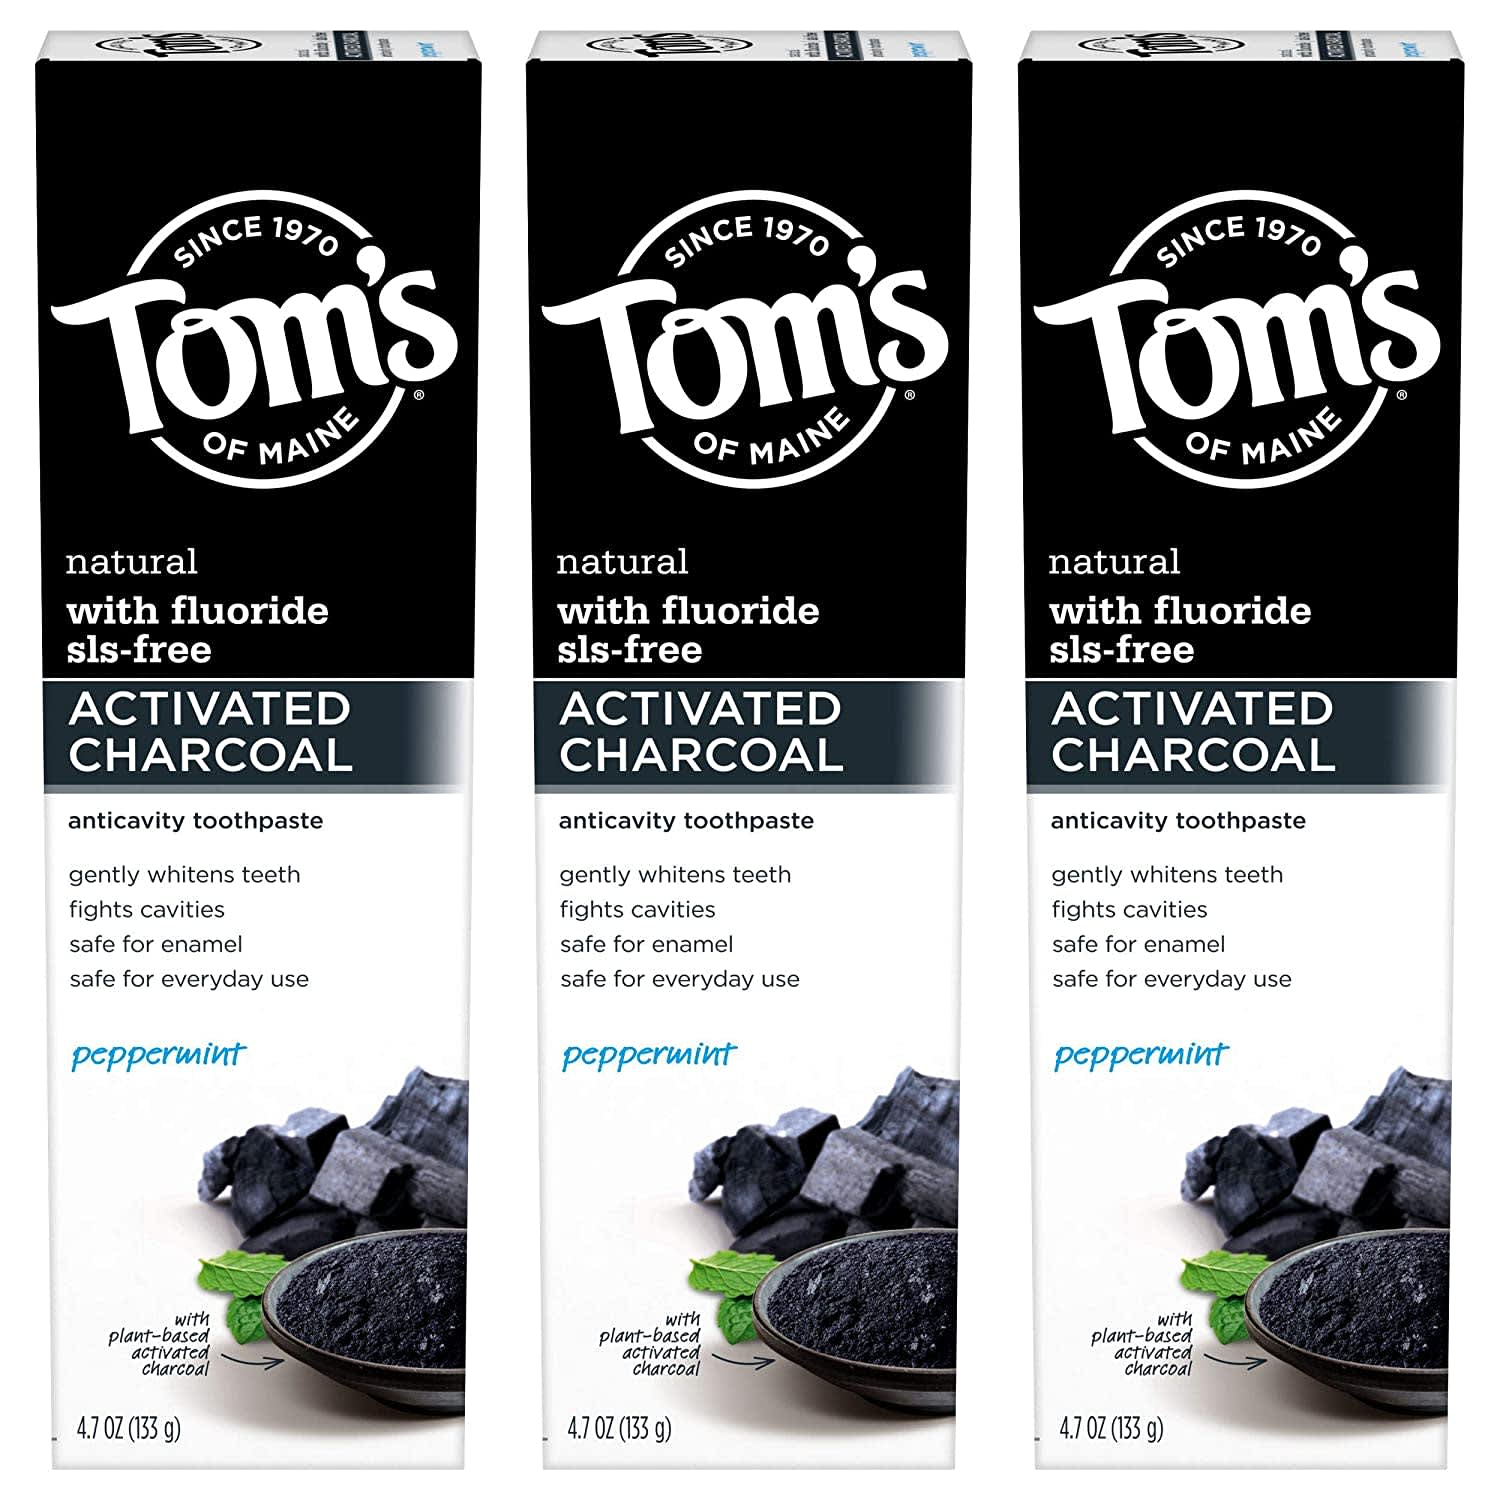 Tom's of Maine Toothpaste and Deodorants at Amazon